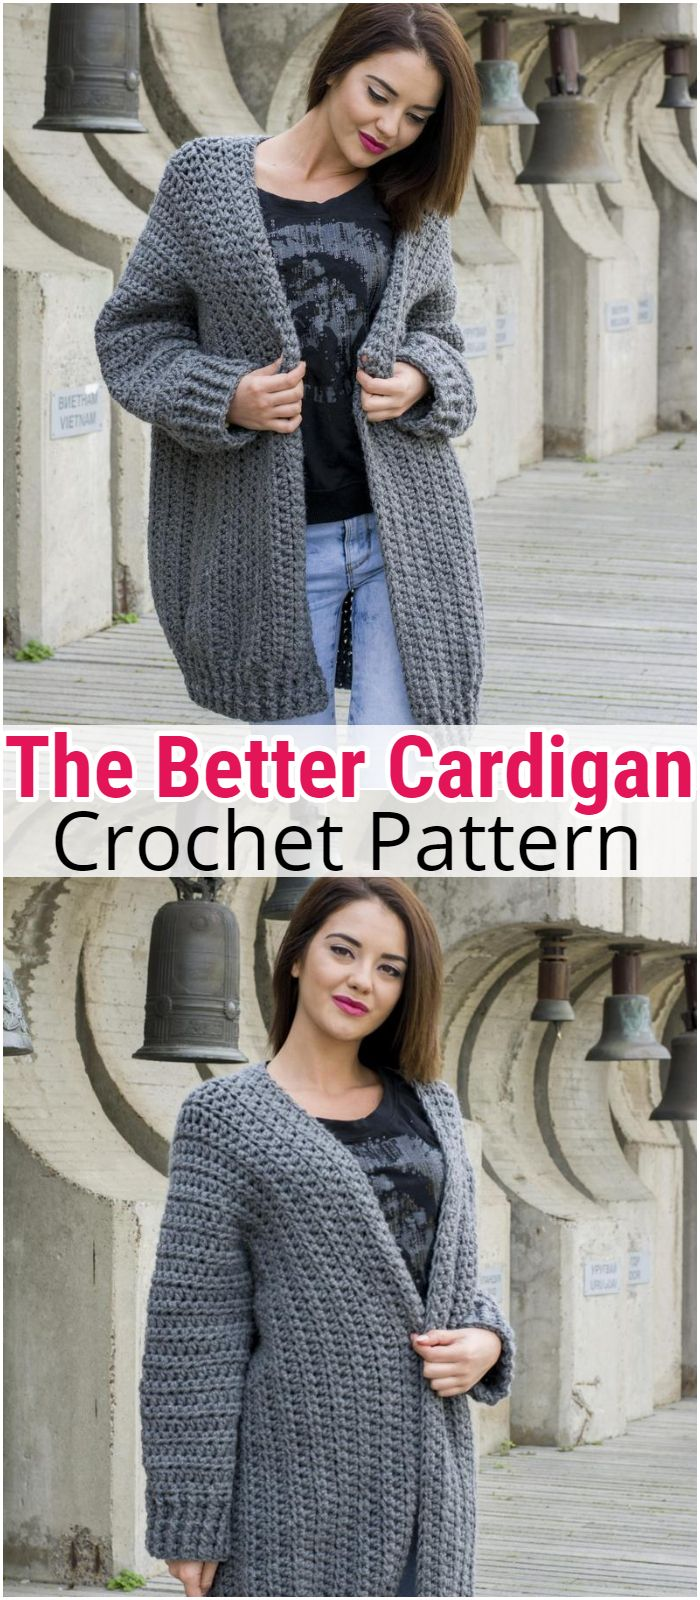 The Better Cardigan